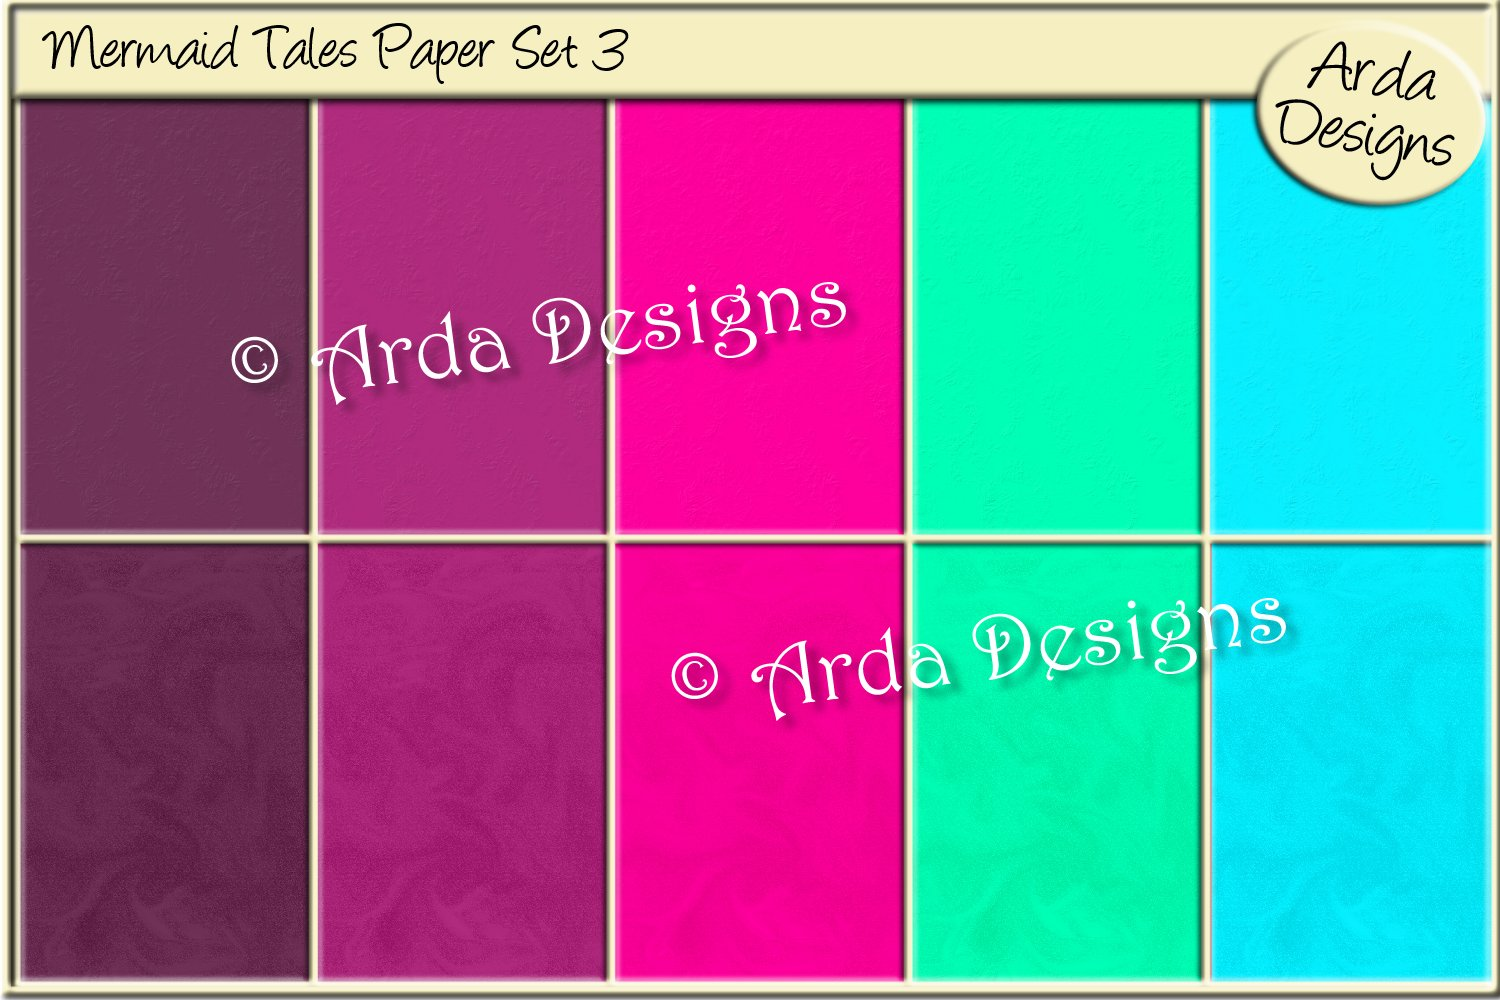 Download Free Mermaid Tales Paper Set 3 Graphic By Arda Designs Creative Fabrica for Cricut Explore, Silhouette and other cutting machines.